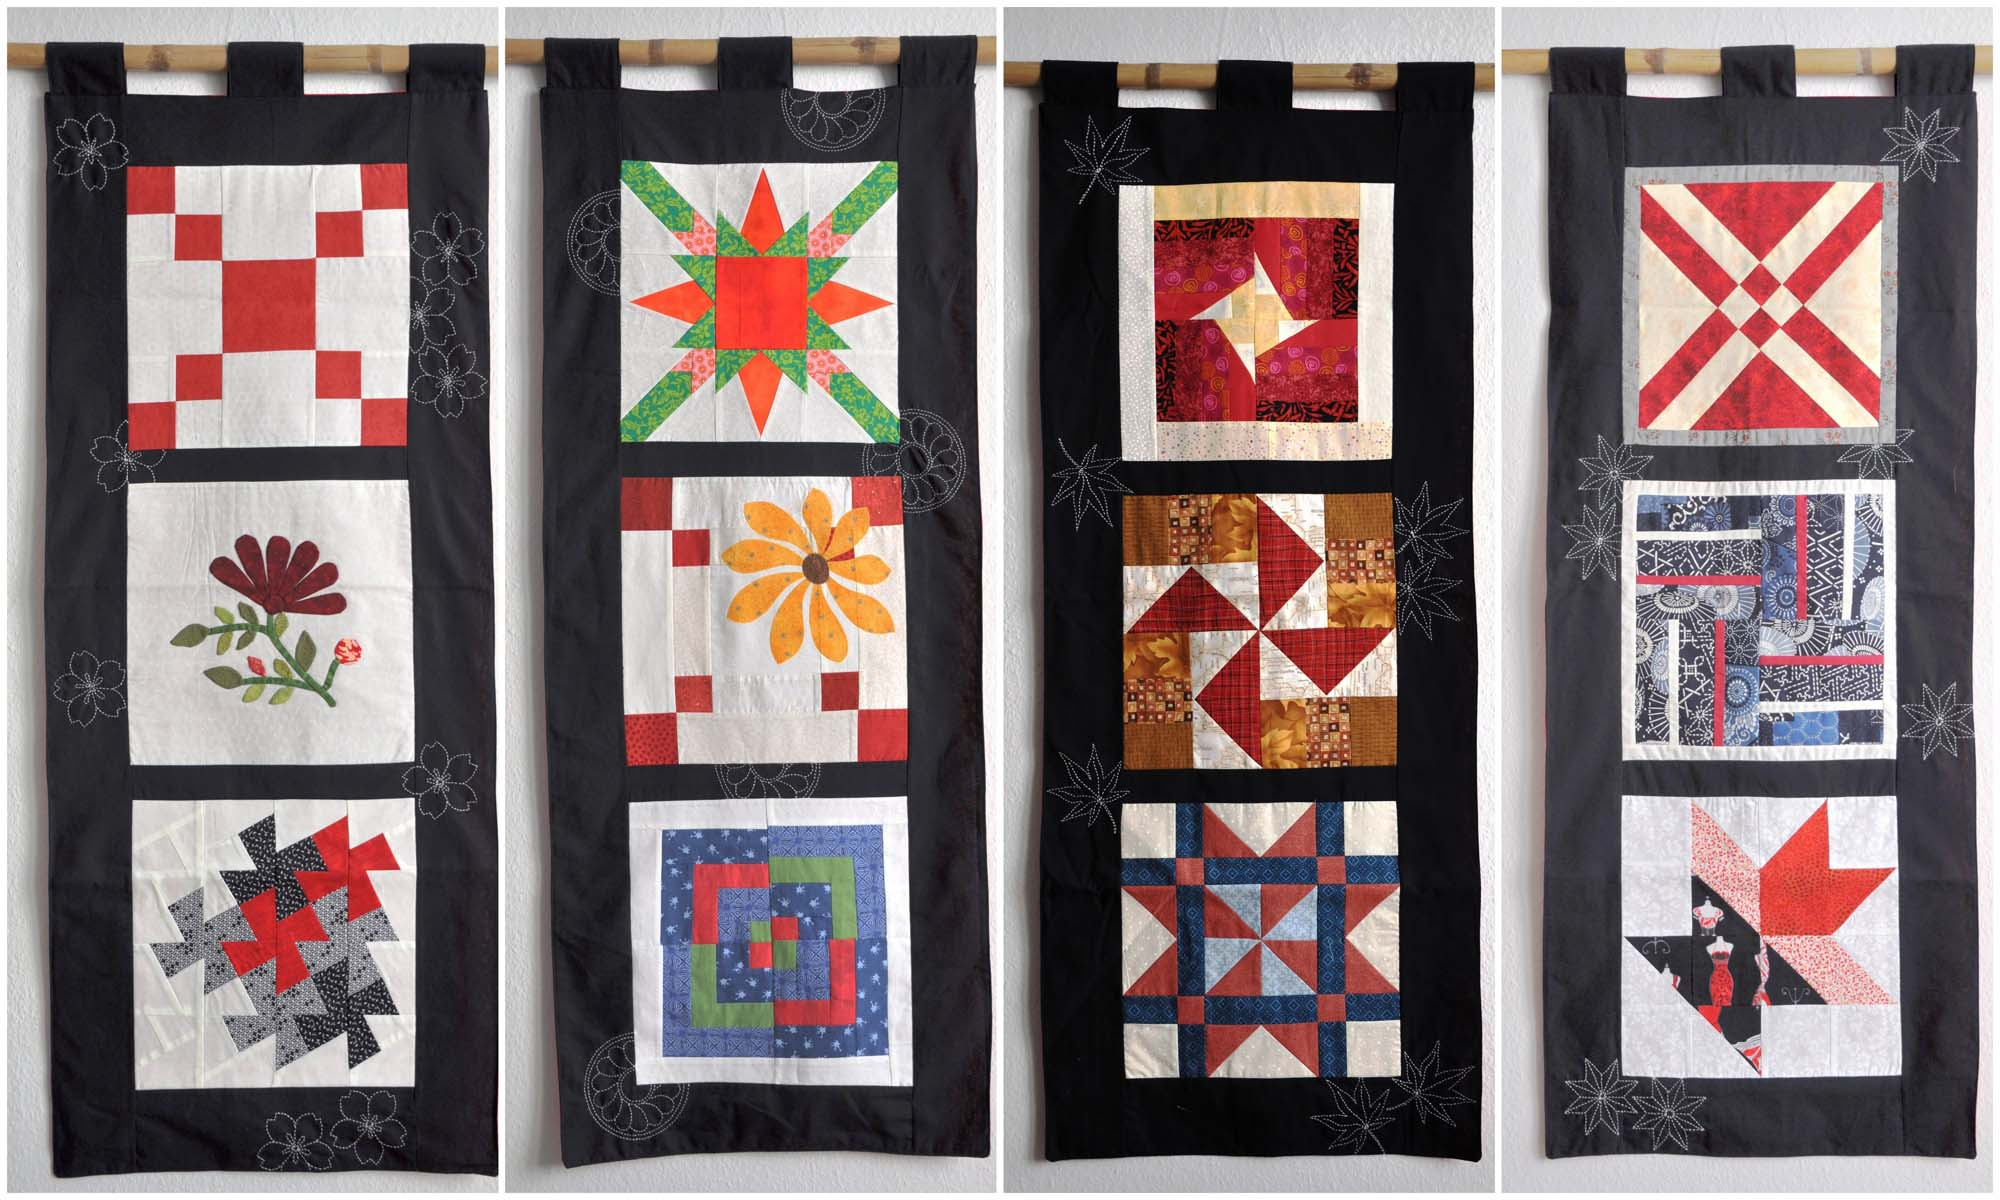 Quilt Wandbehang Yukikos Wandbehang Quilt Around The World